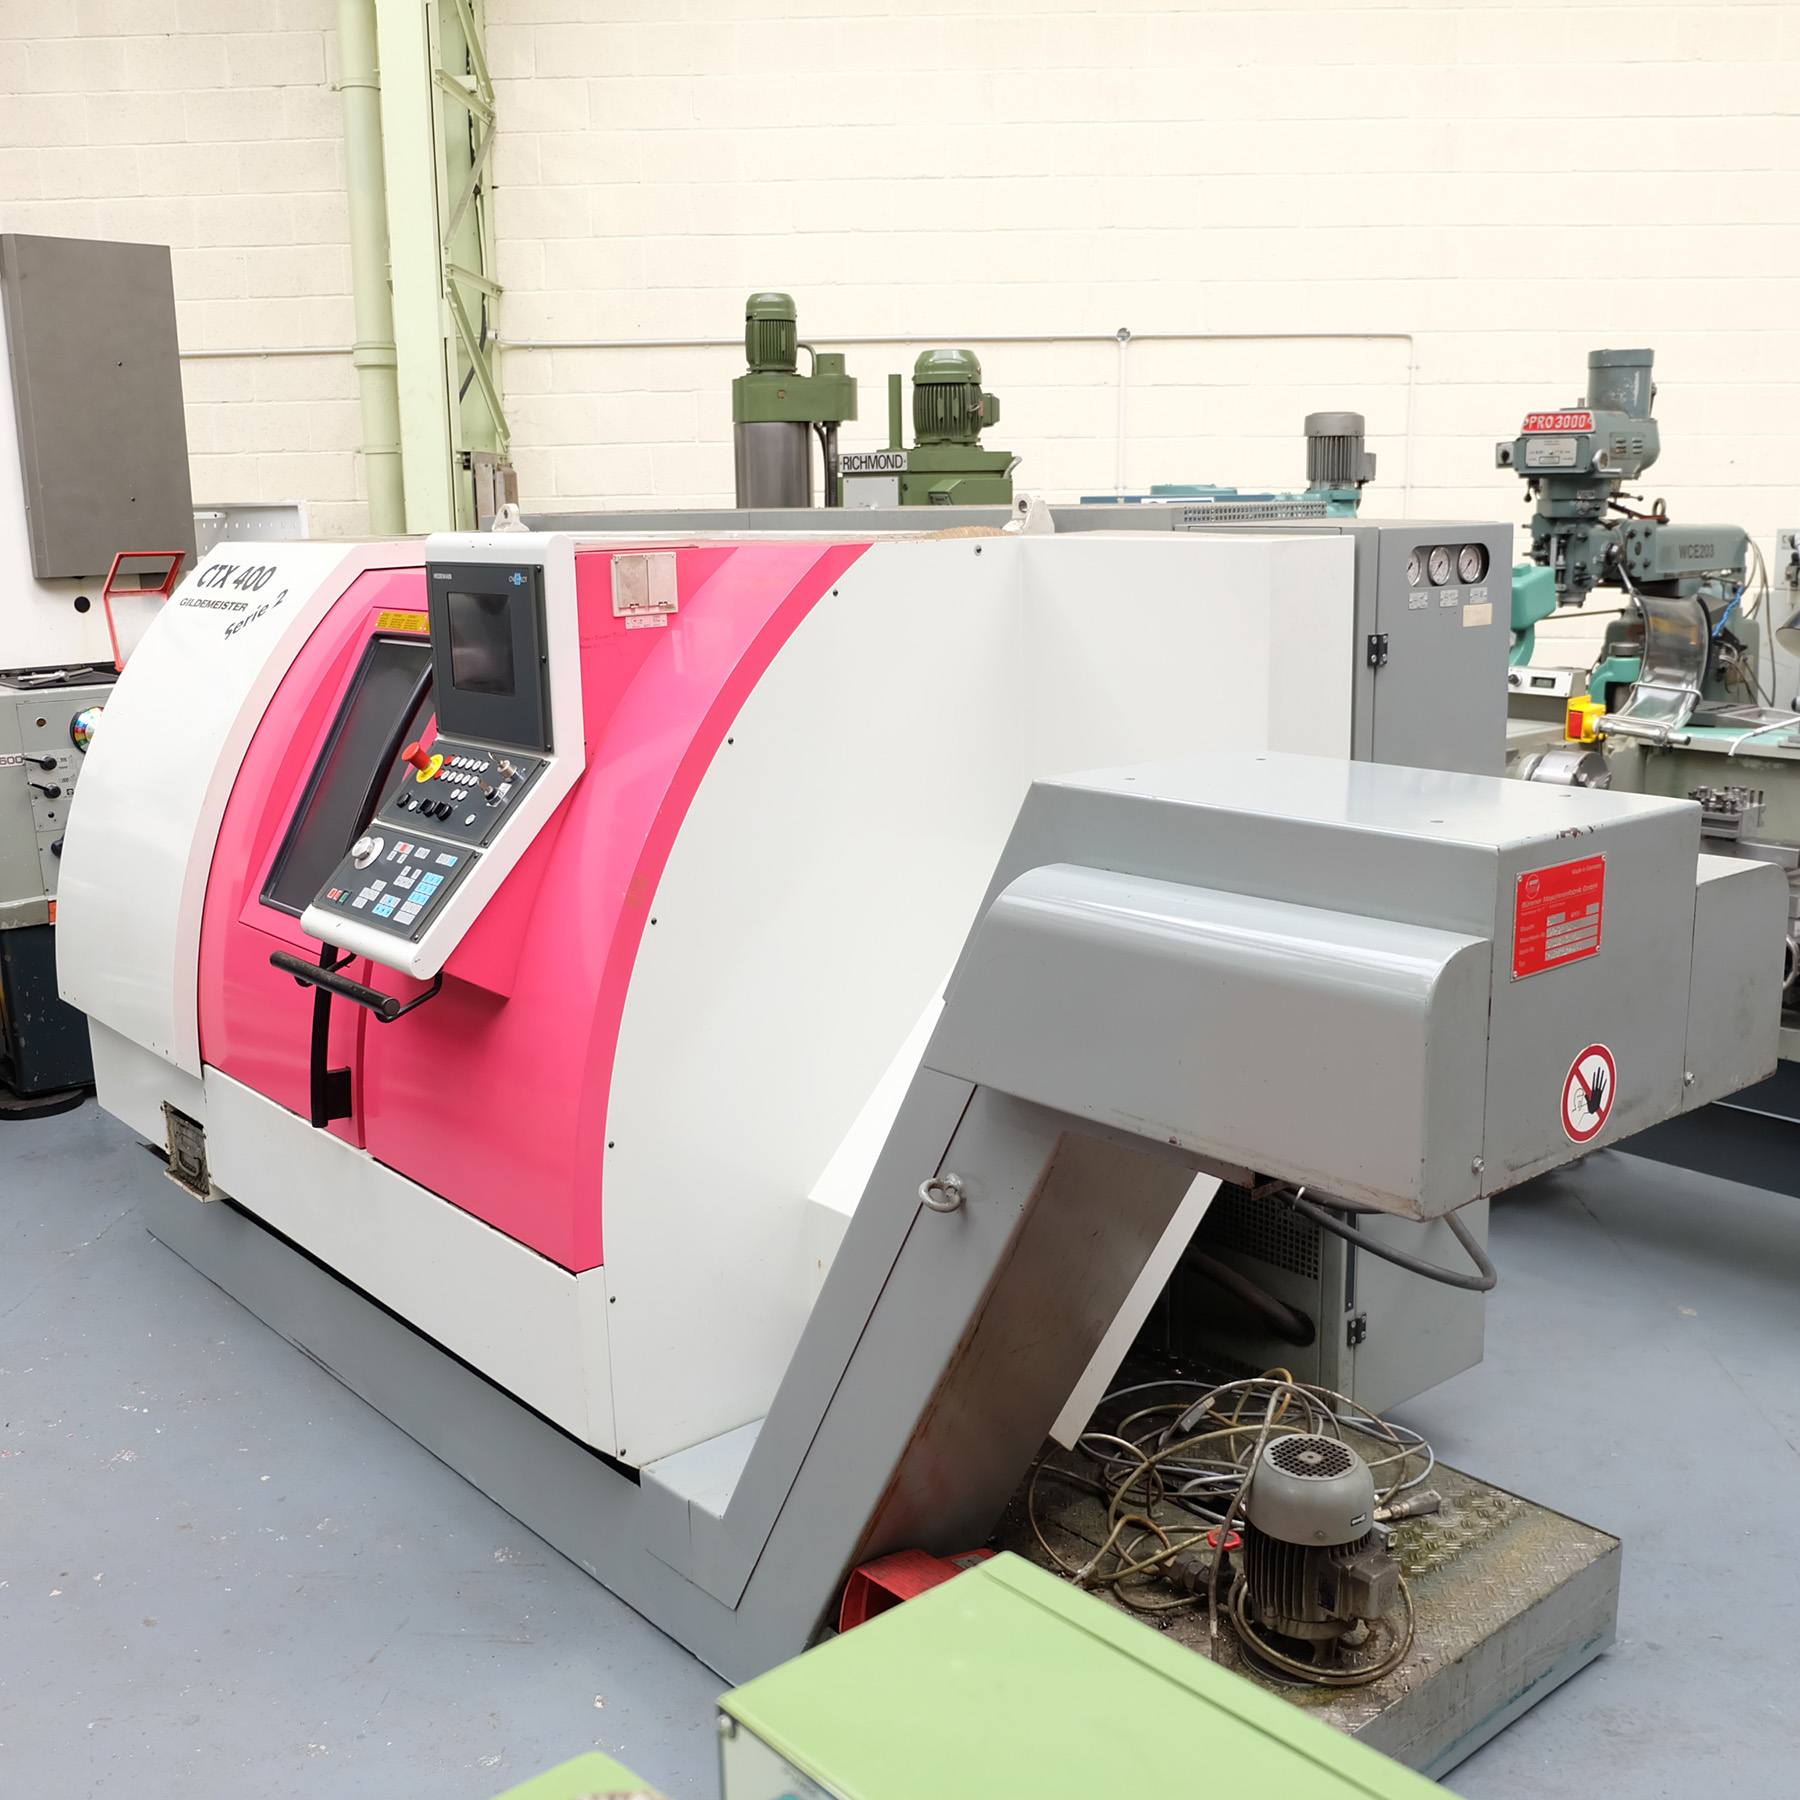 Guildermeister CTX-400 S2. CNC Turning & Milling Centre. With Heidenhain Pilot Control - Image 2 of 17